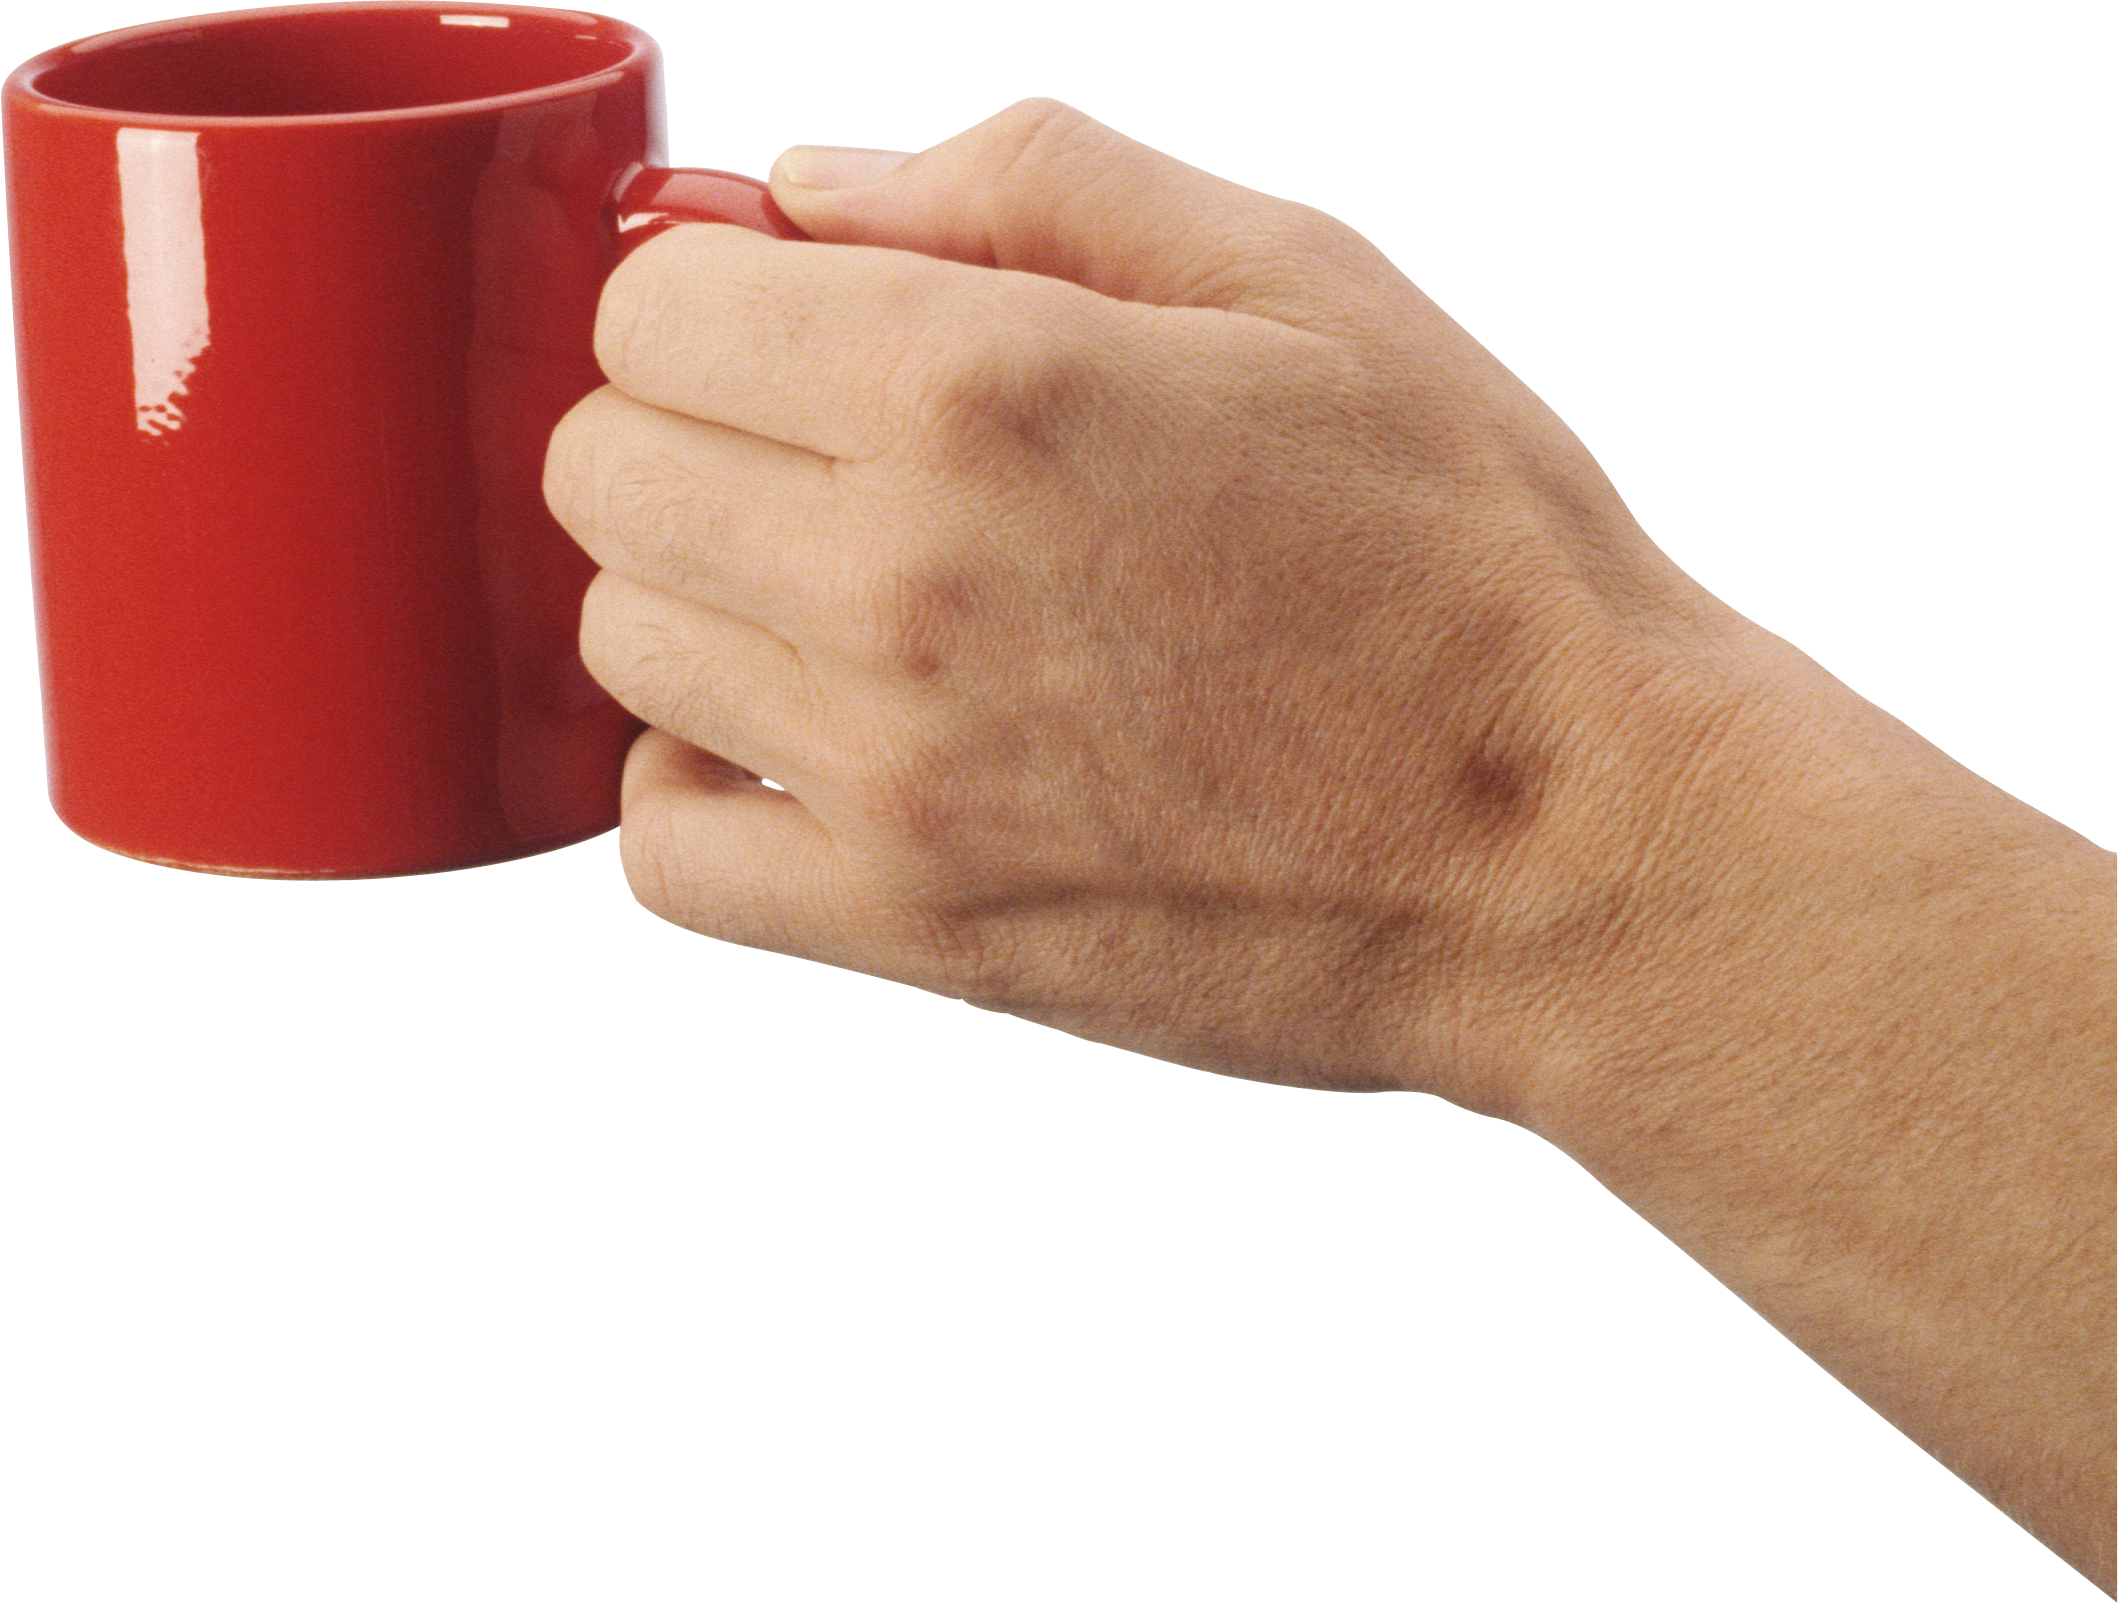 Drink clipart hand holding. Cup isolated stock photo